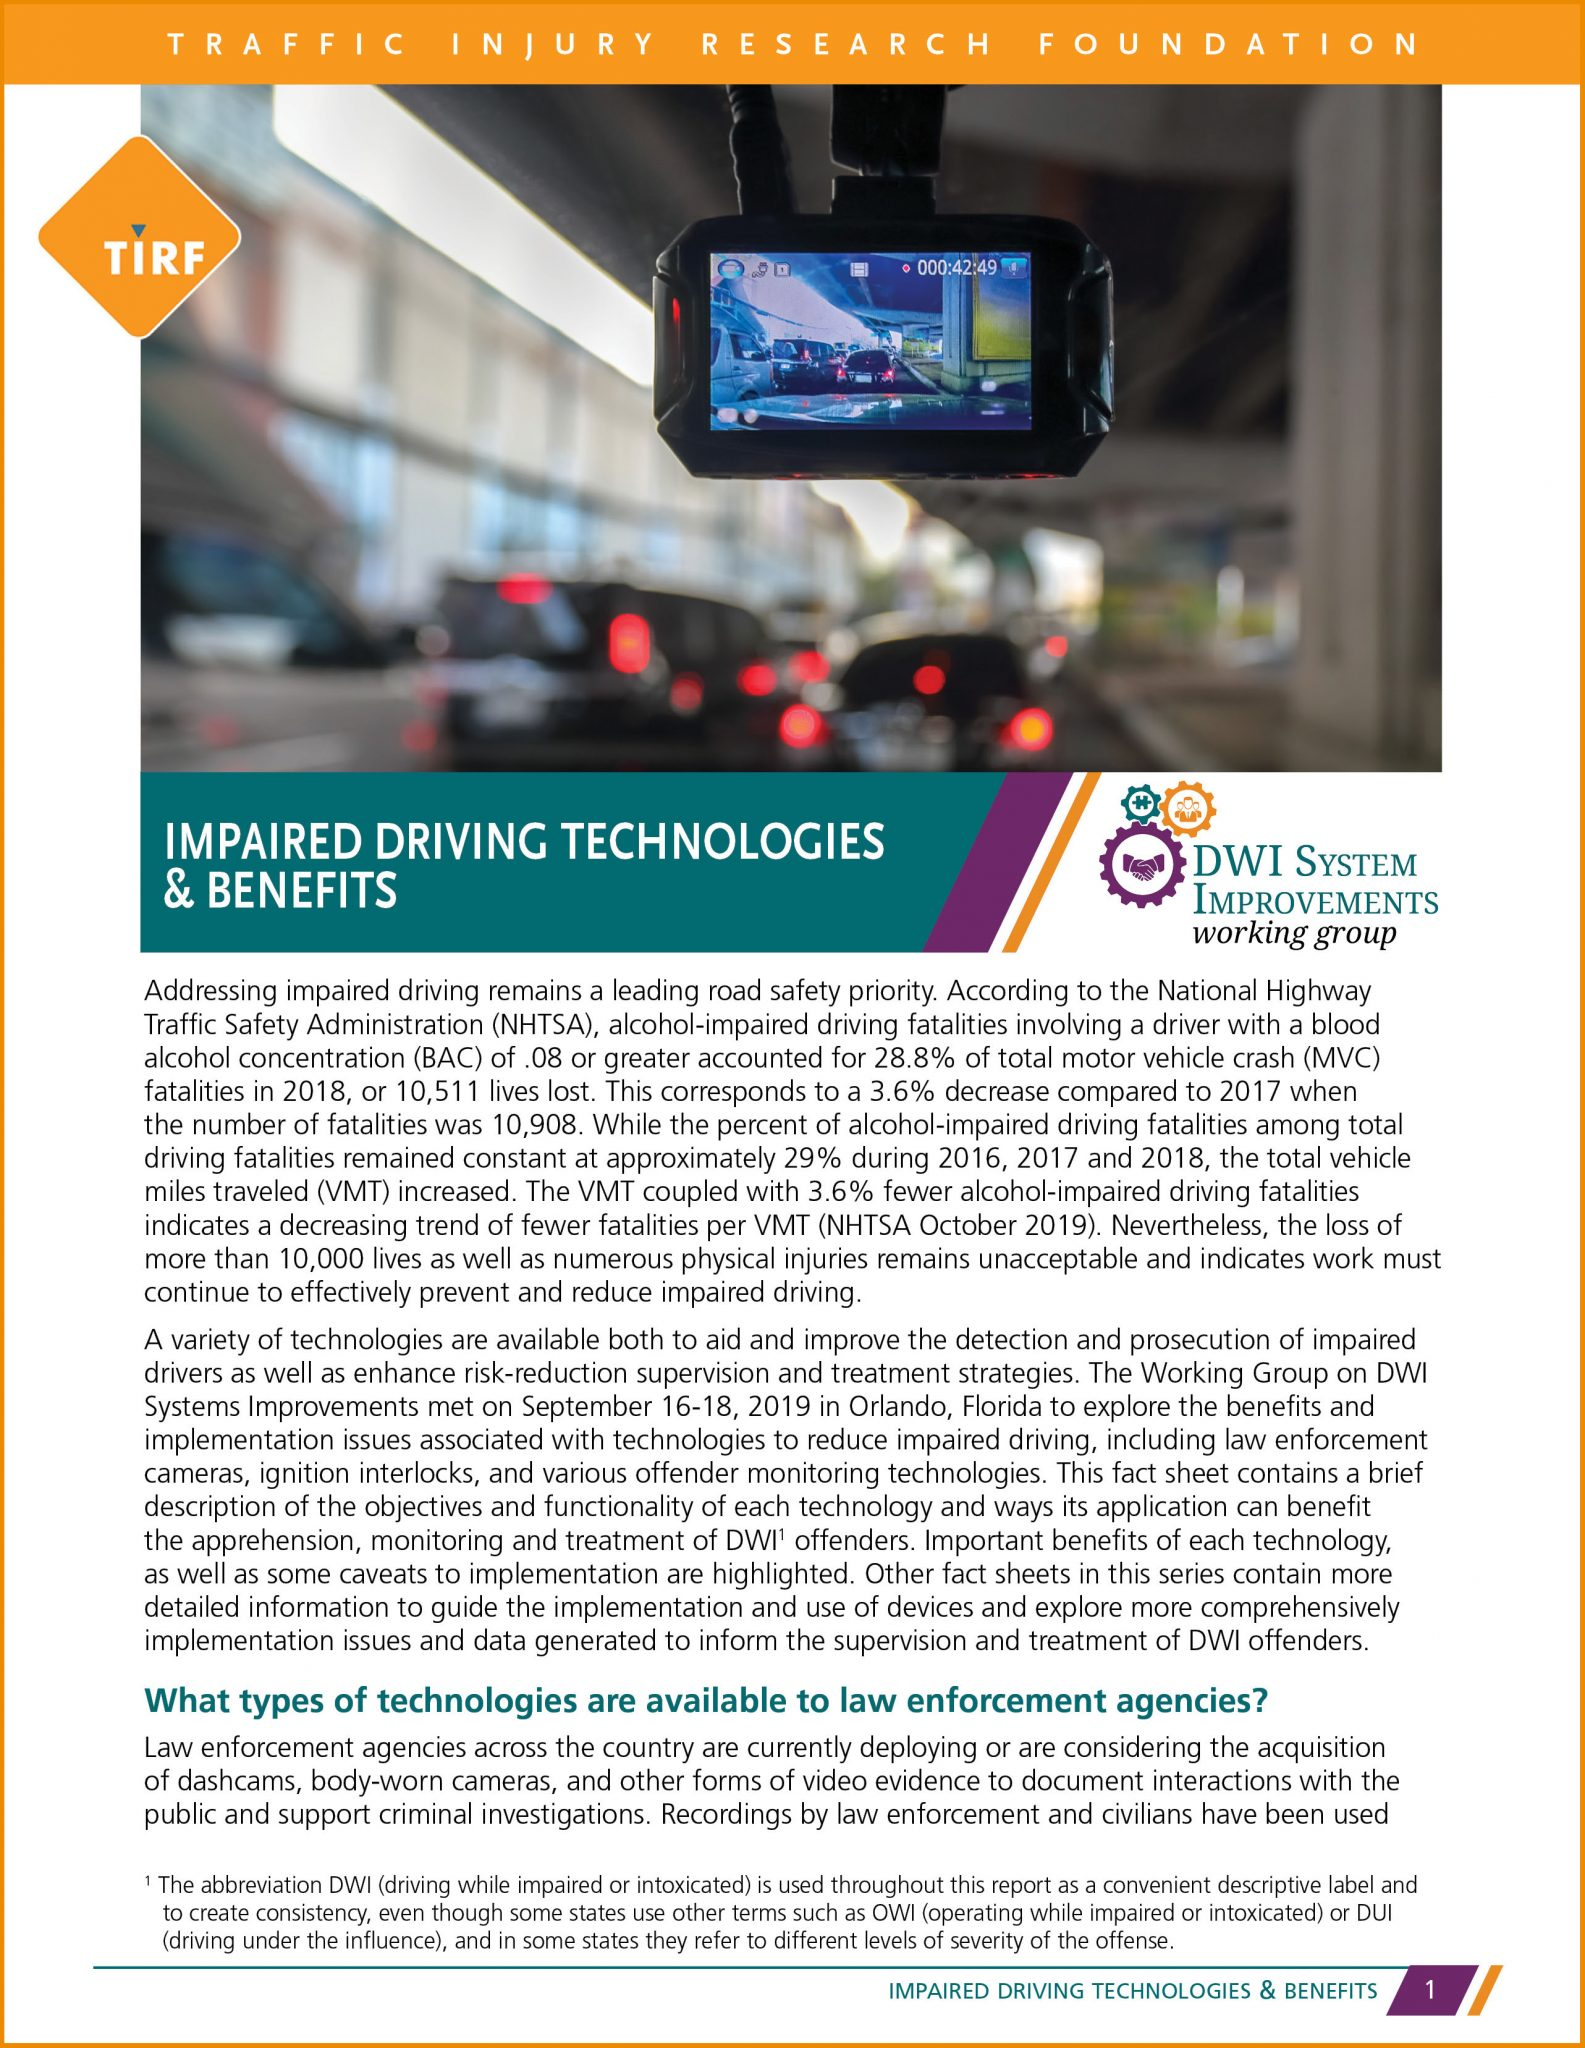 Impaired Driving Technologies & Benefits